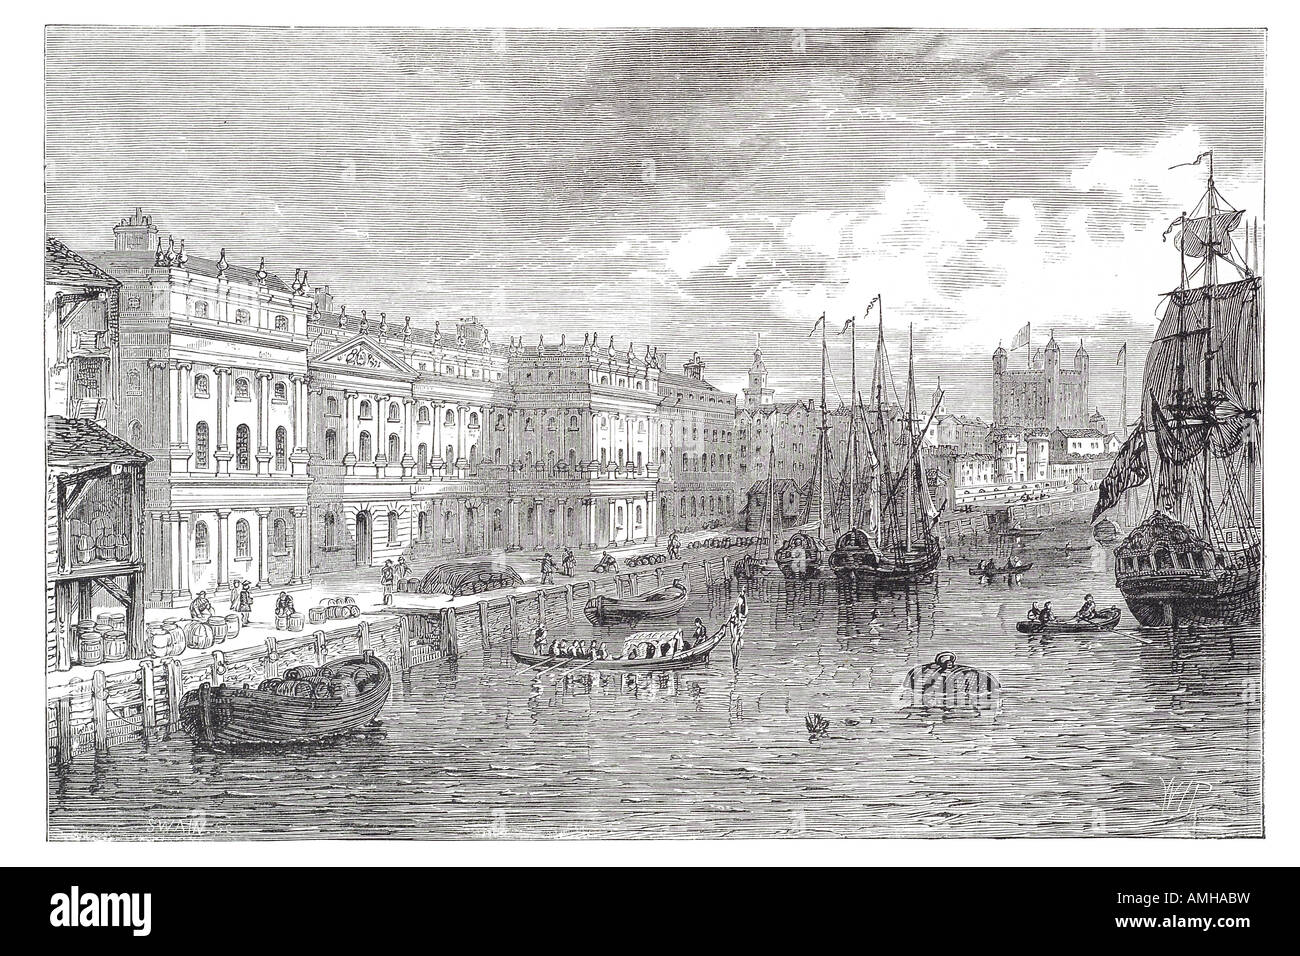 1753 custom house River ThamesTrade Industry boats, ships, loading, unlaoding, cargo, docks London City capital - Stock Image